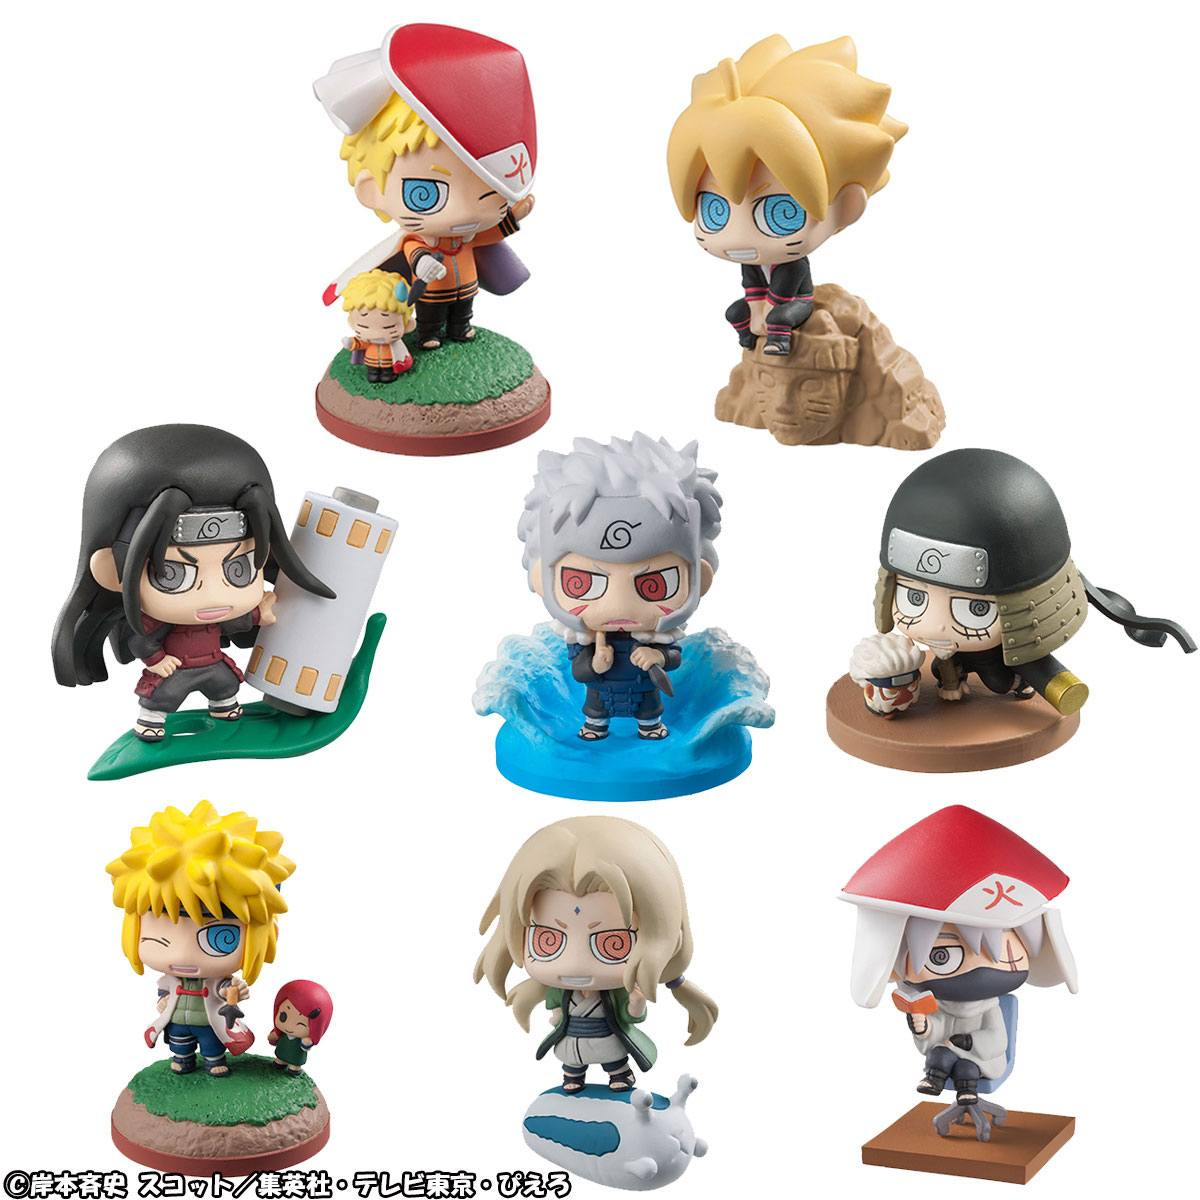 Boruto Naruto Next Generation Petit Chara Land Trading Figure 6 cm Assortment Boruto & Hokage (8) --